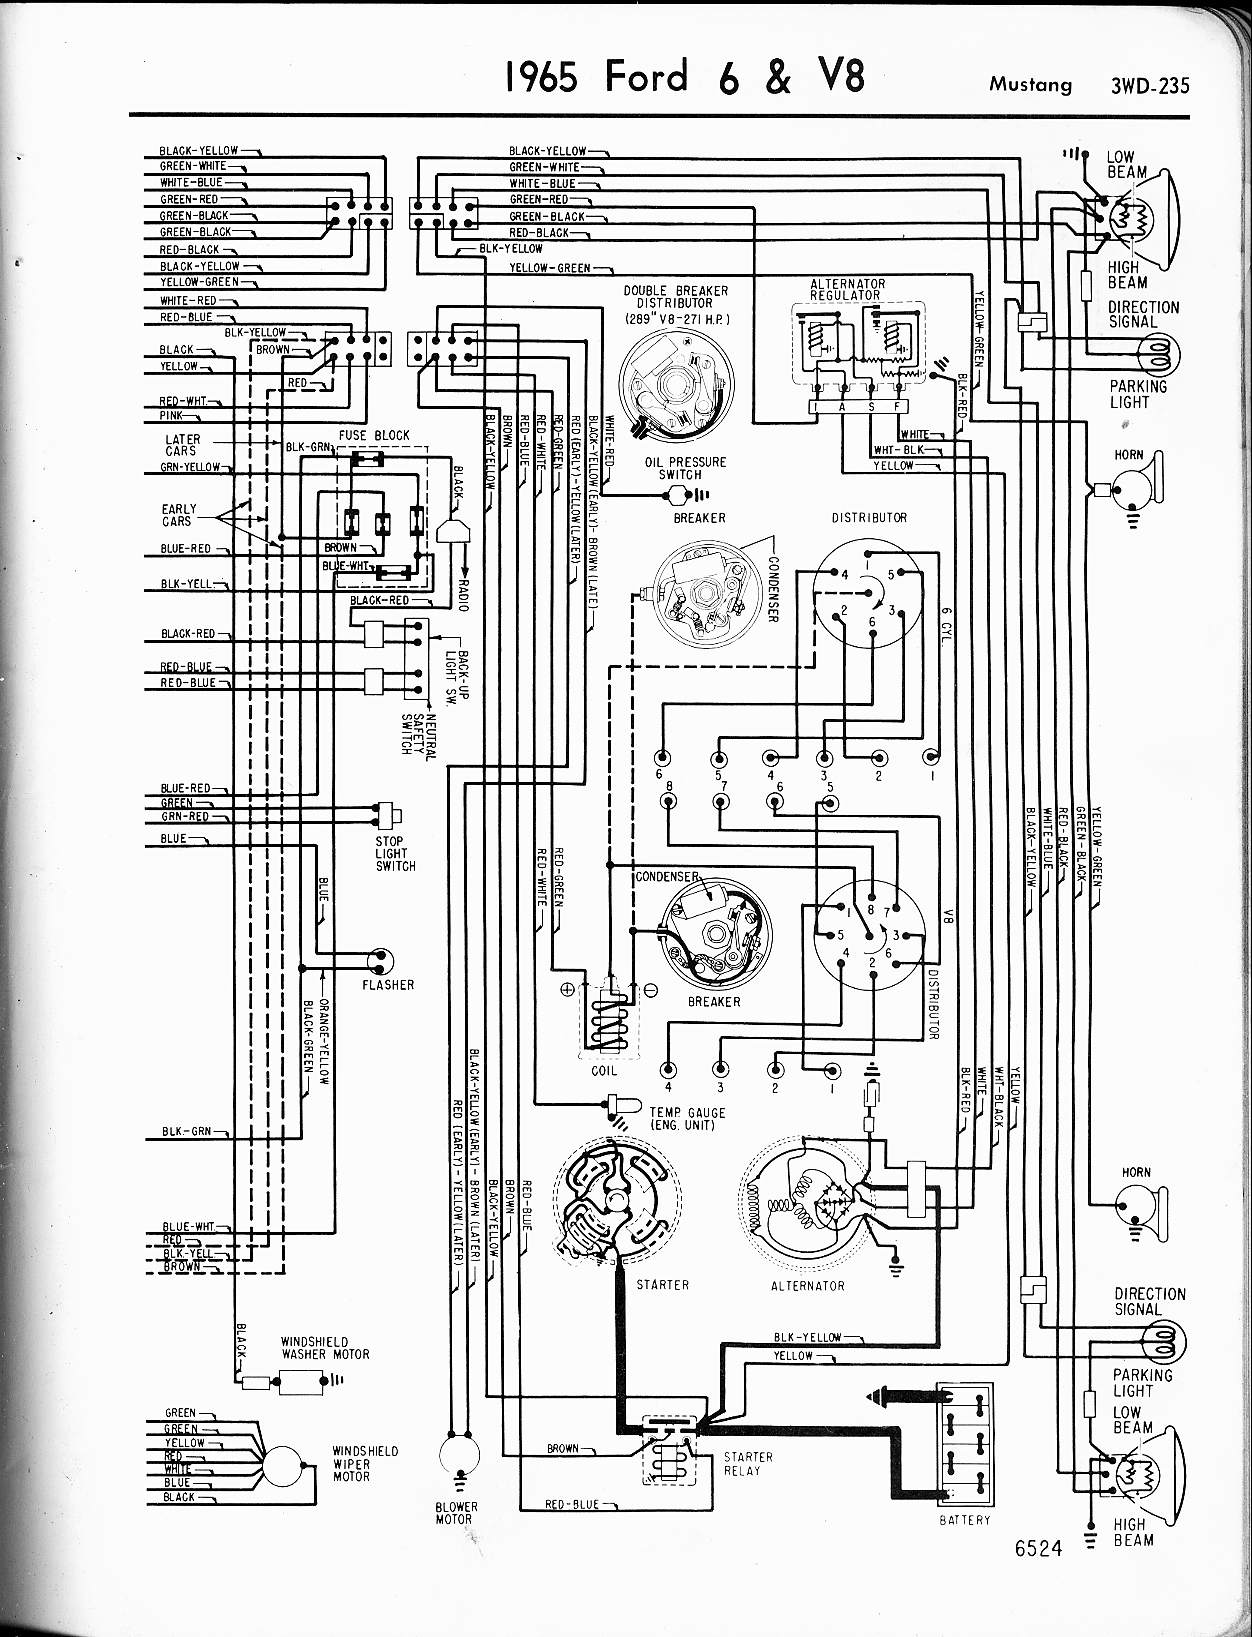 MWire5765 235 100 [ mustang horn wiring diagram ] 63 impala fuse box on 63 1965 mustang instrument cluster wiring diagram at n-0.co